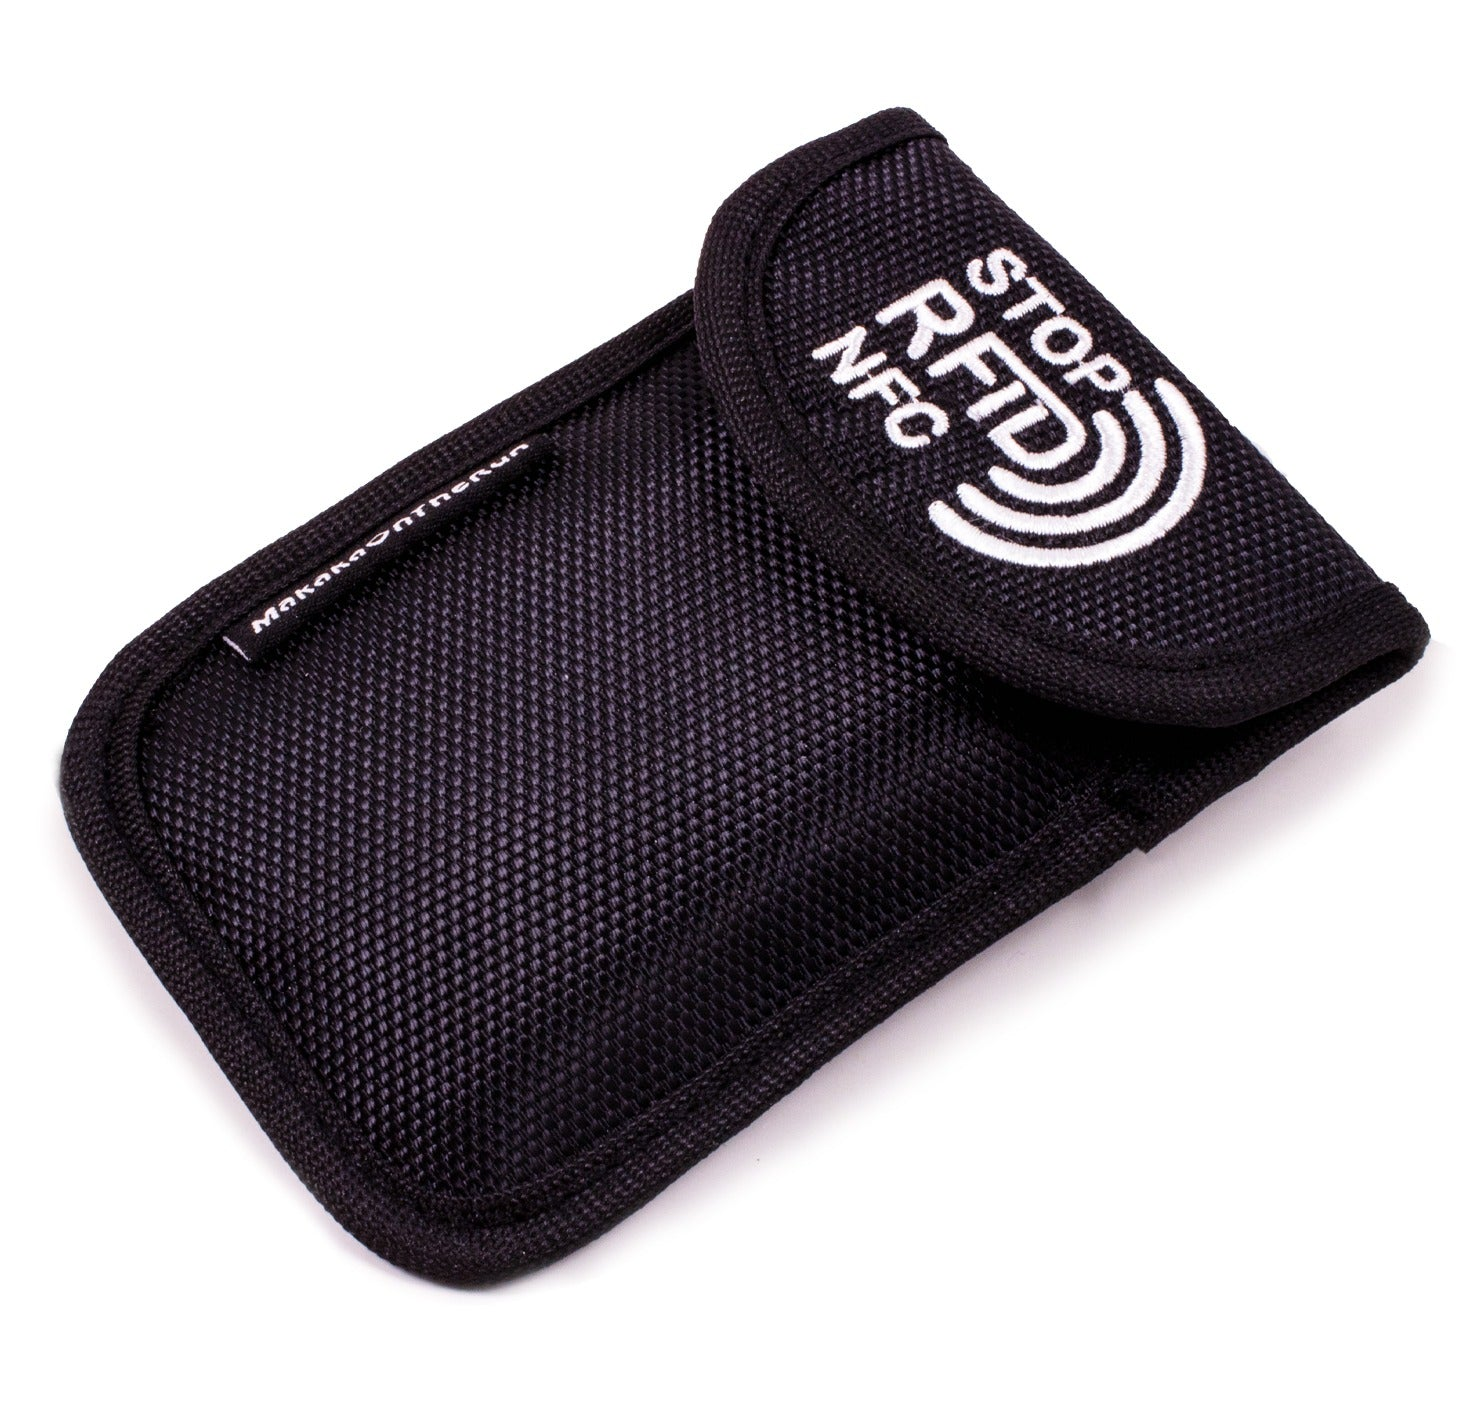 KeySafe Case Autoschlüssel-Etui (Keyless-Go Blocker) - MakakaOnTheRun RFID NFC Blocker & Anti Spy Produkte